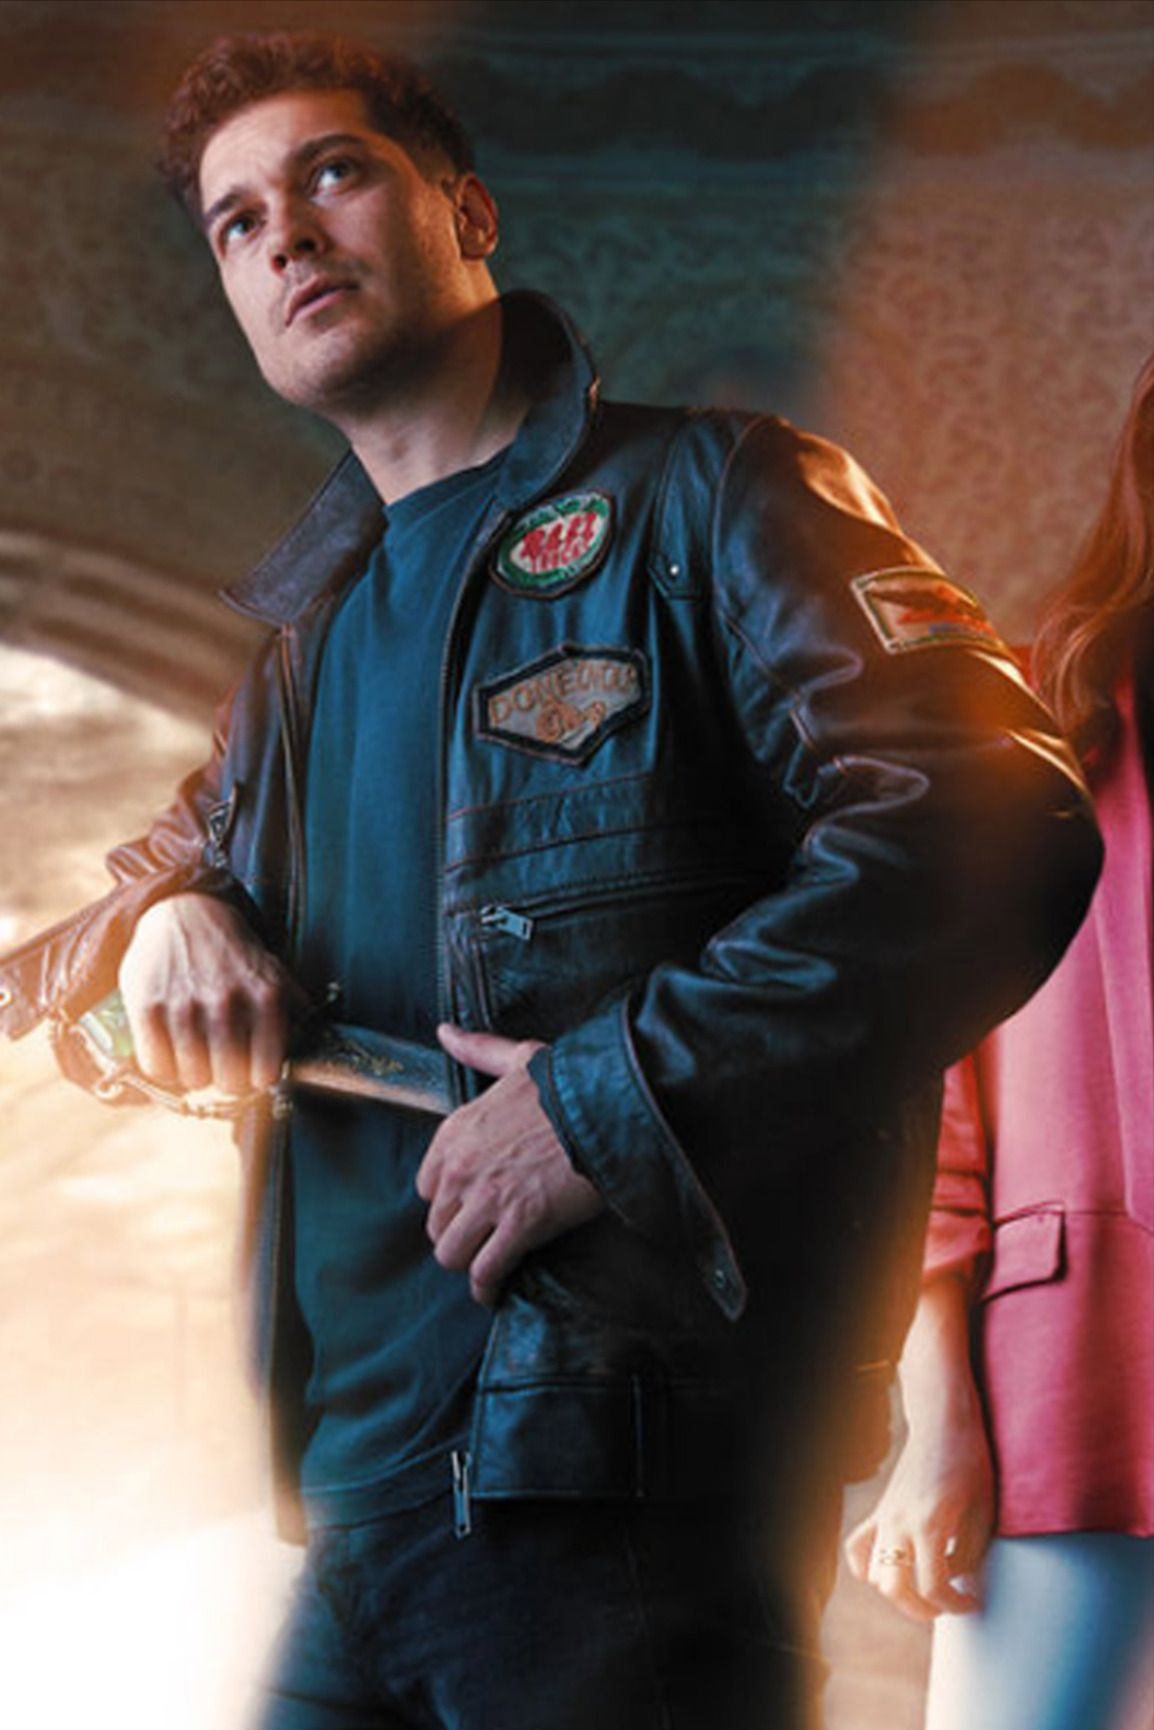 Pin by Hollywood Jackets on Tv Series Jackets in 2020